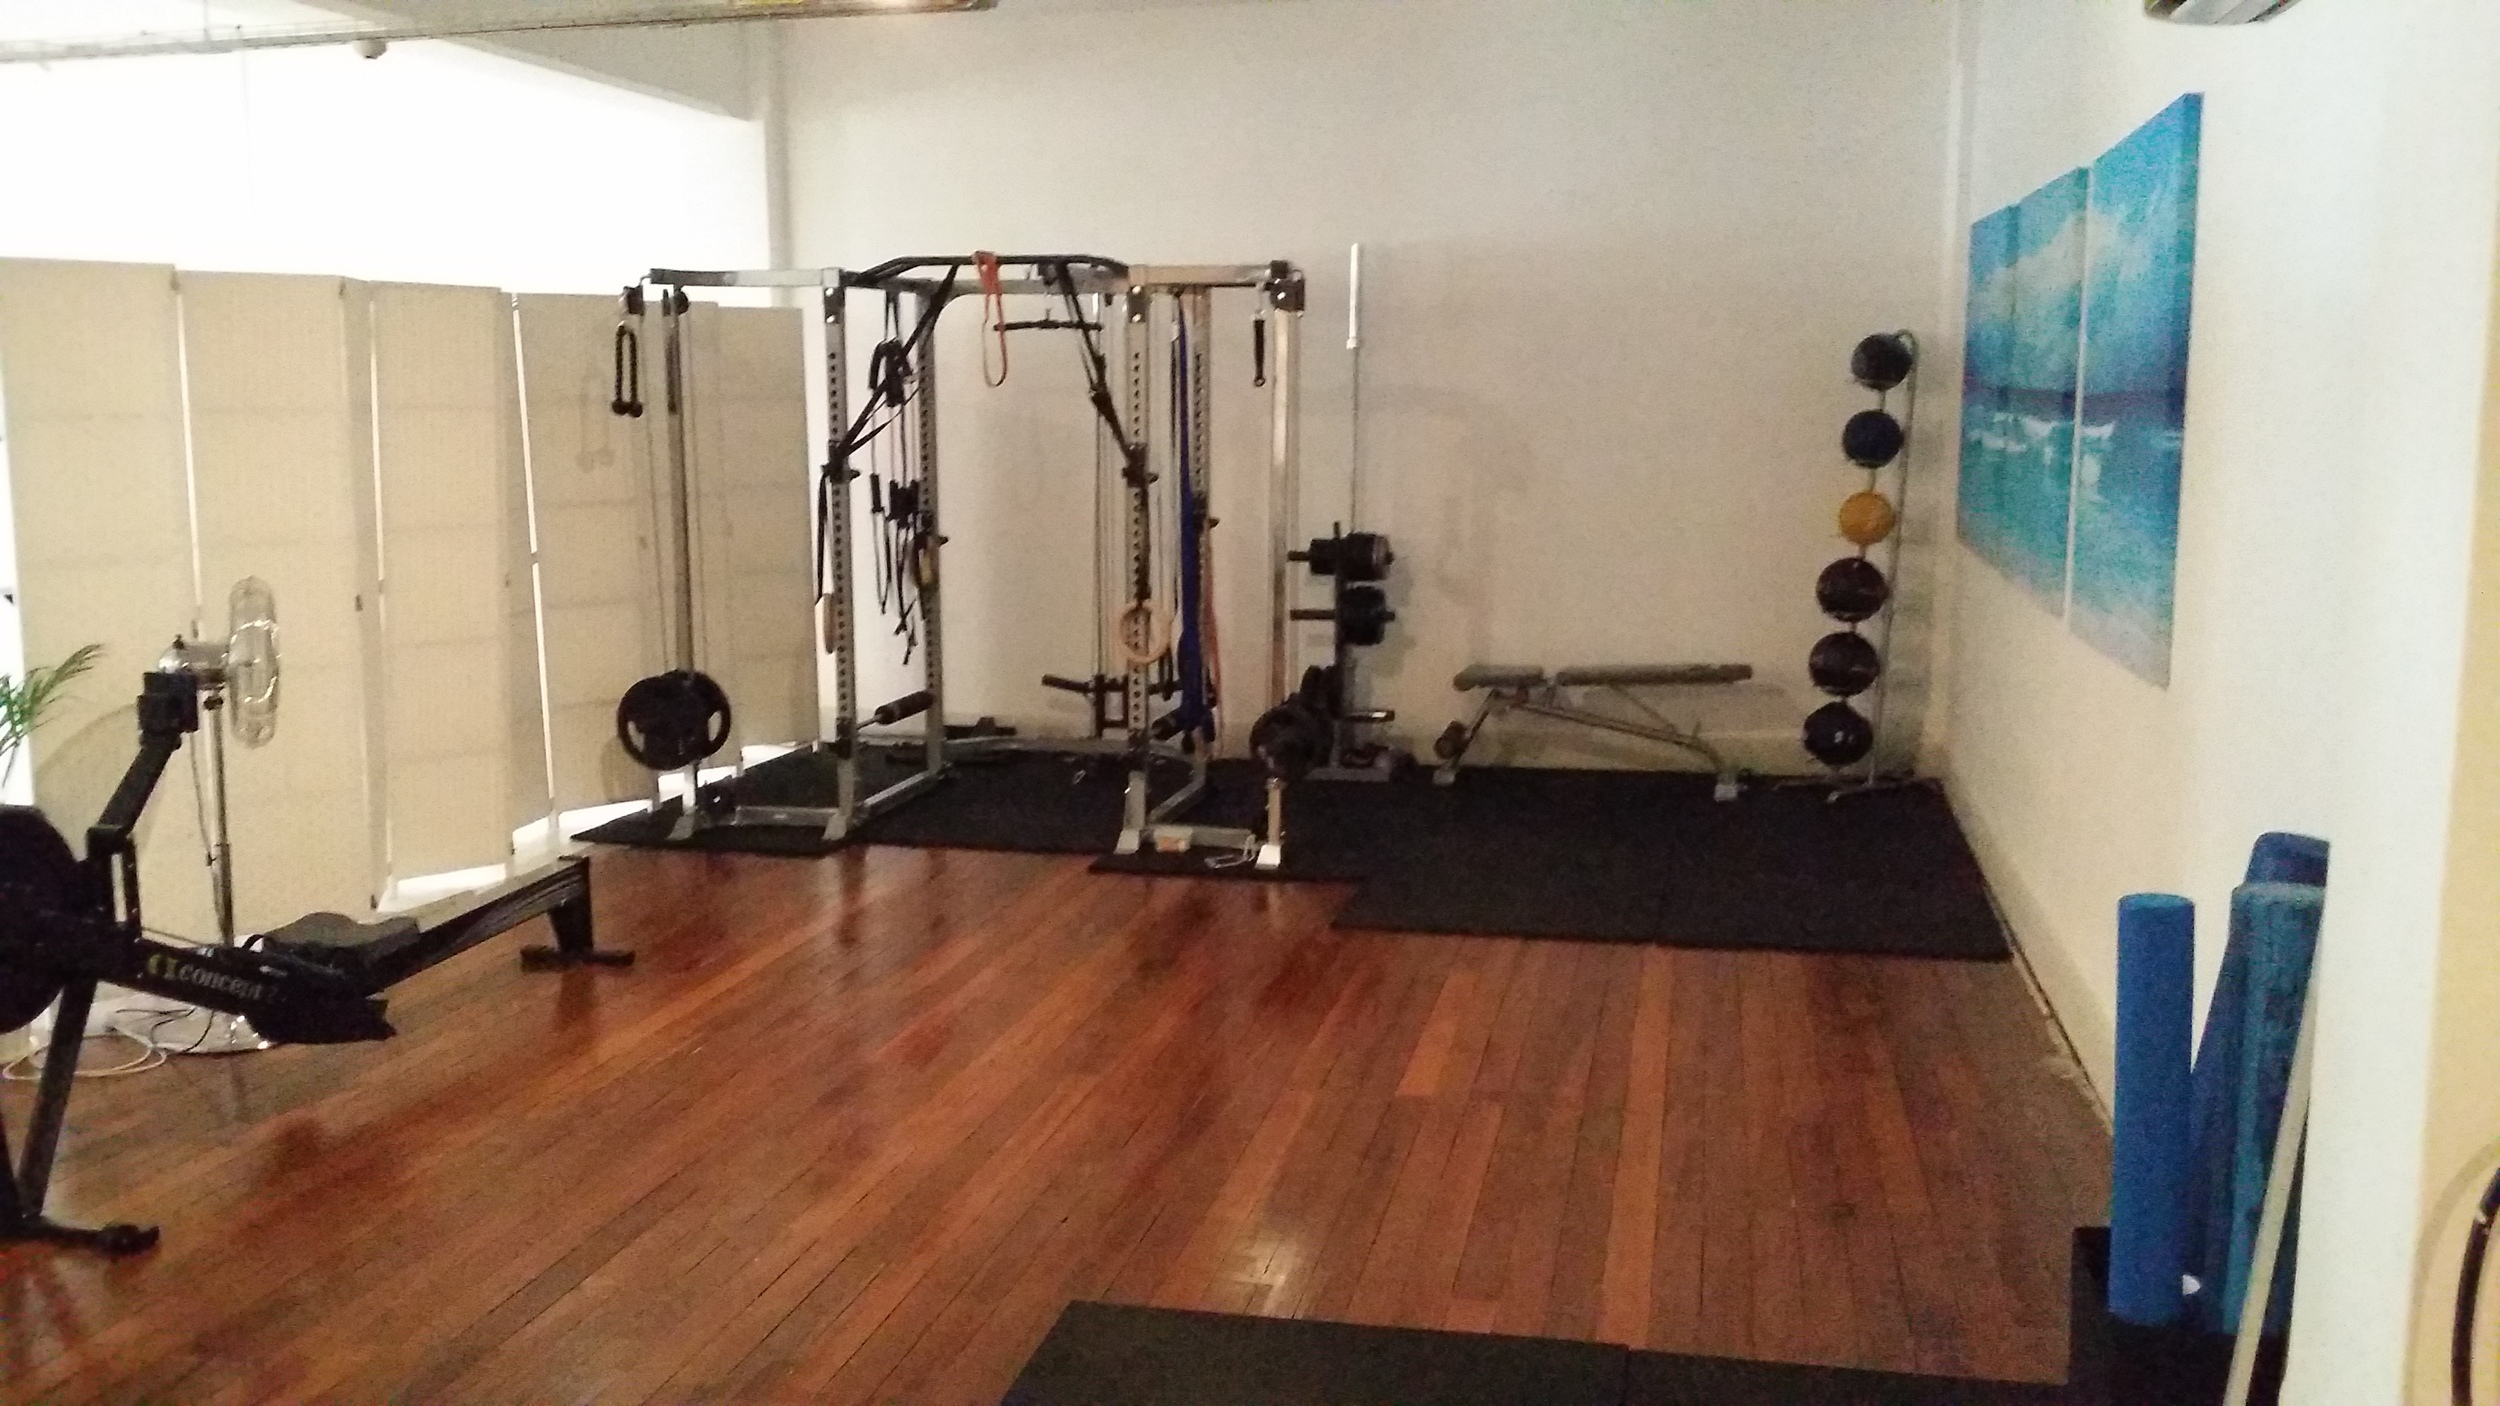 Moov Personal Training Adelaide: New gym space nearly complete